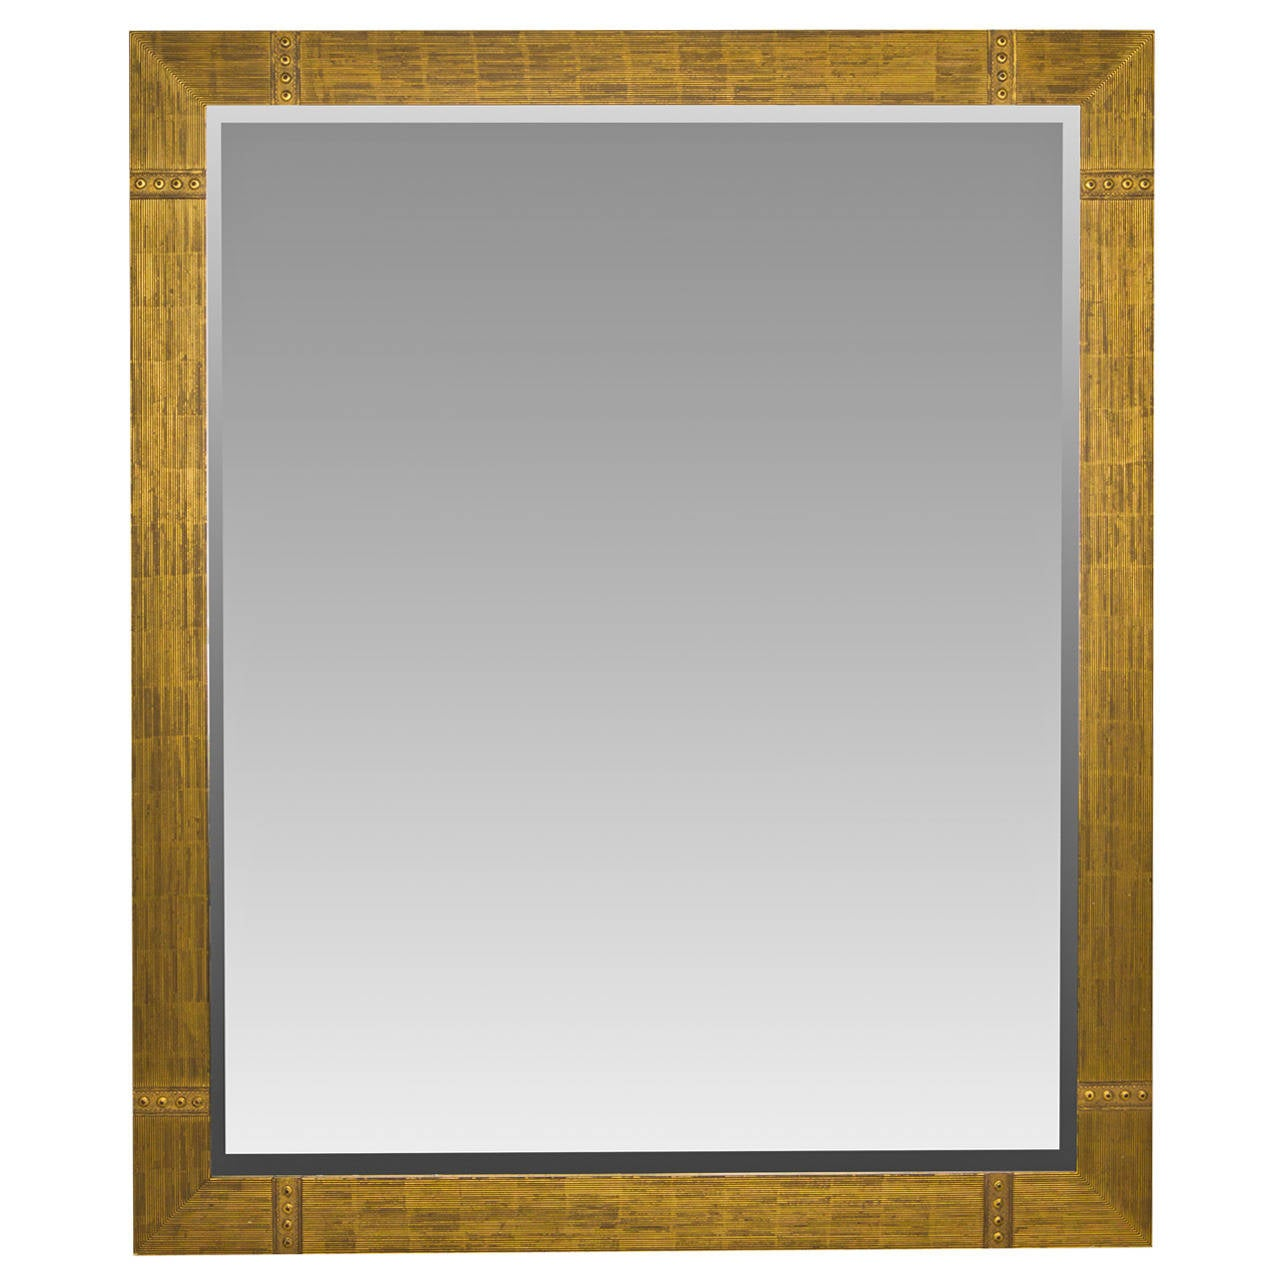 large custom made gilded beveled mirror 6 feet high at 1stdibs